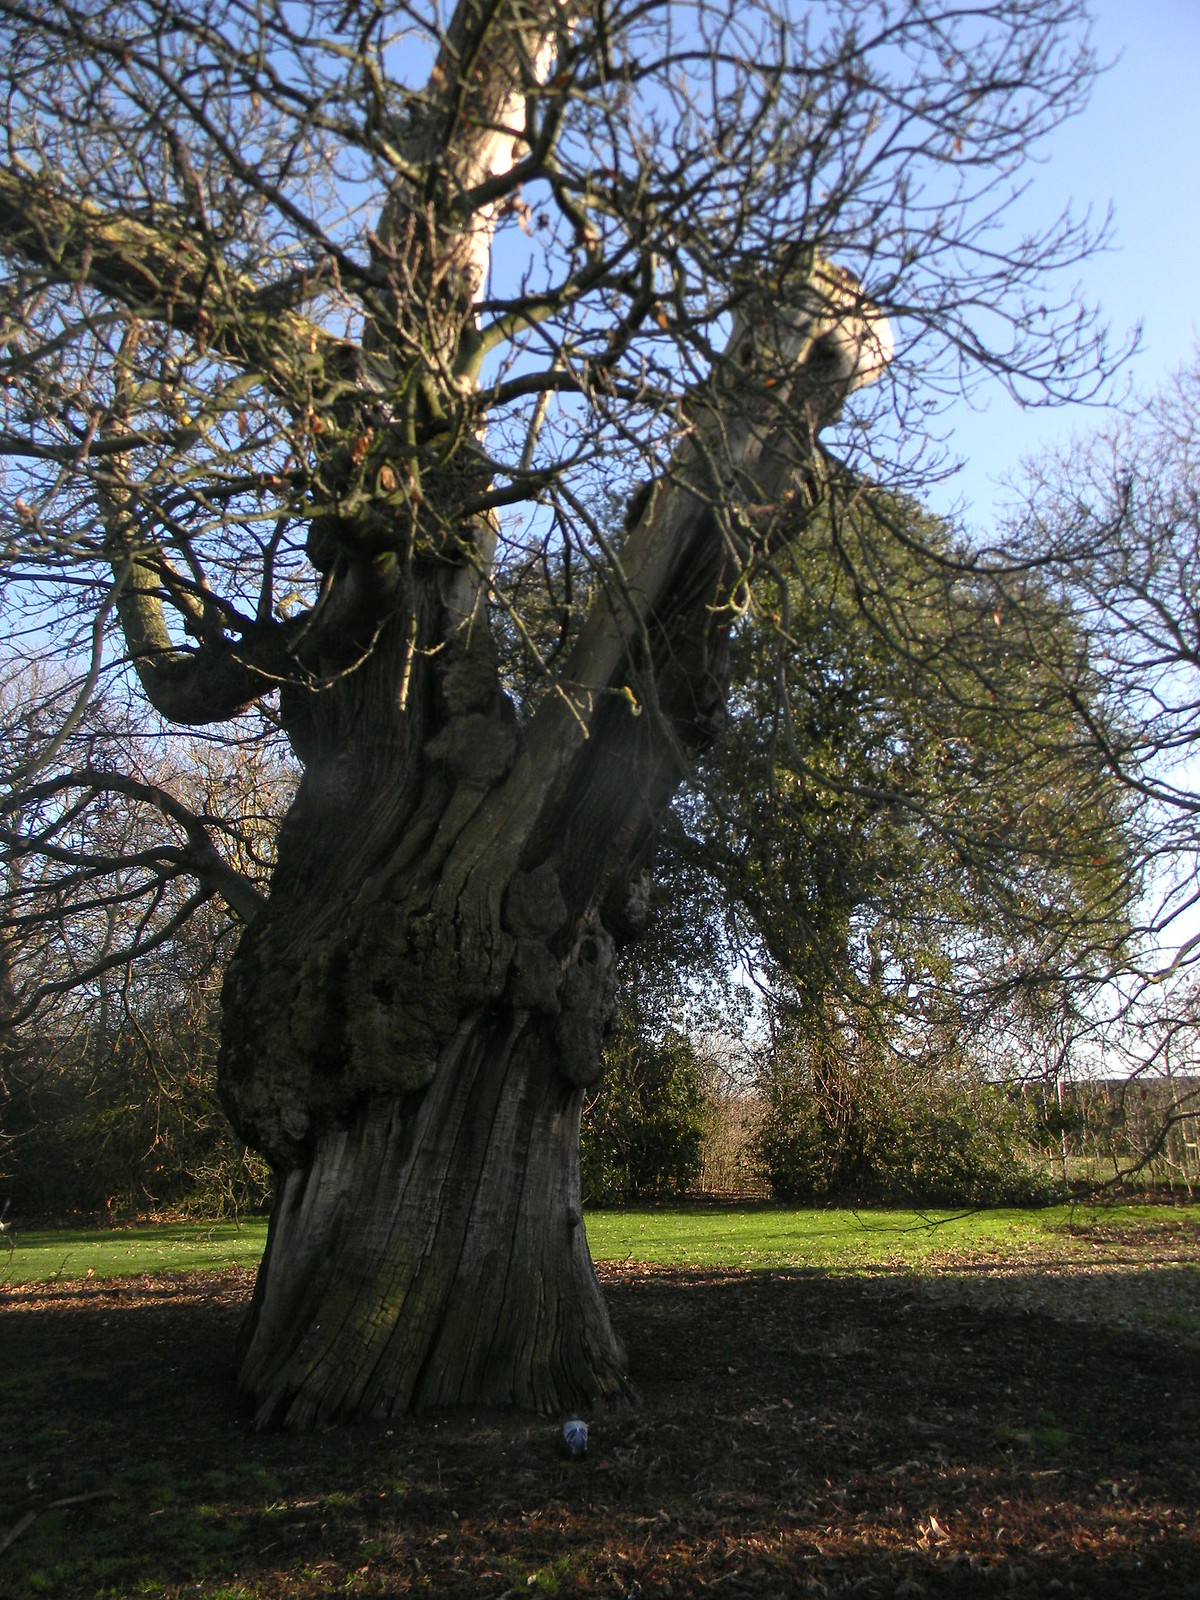 Big old tree Blackheath to Canary Wharf